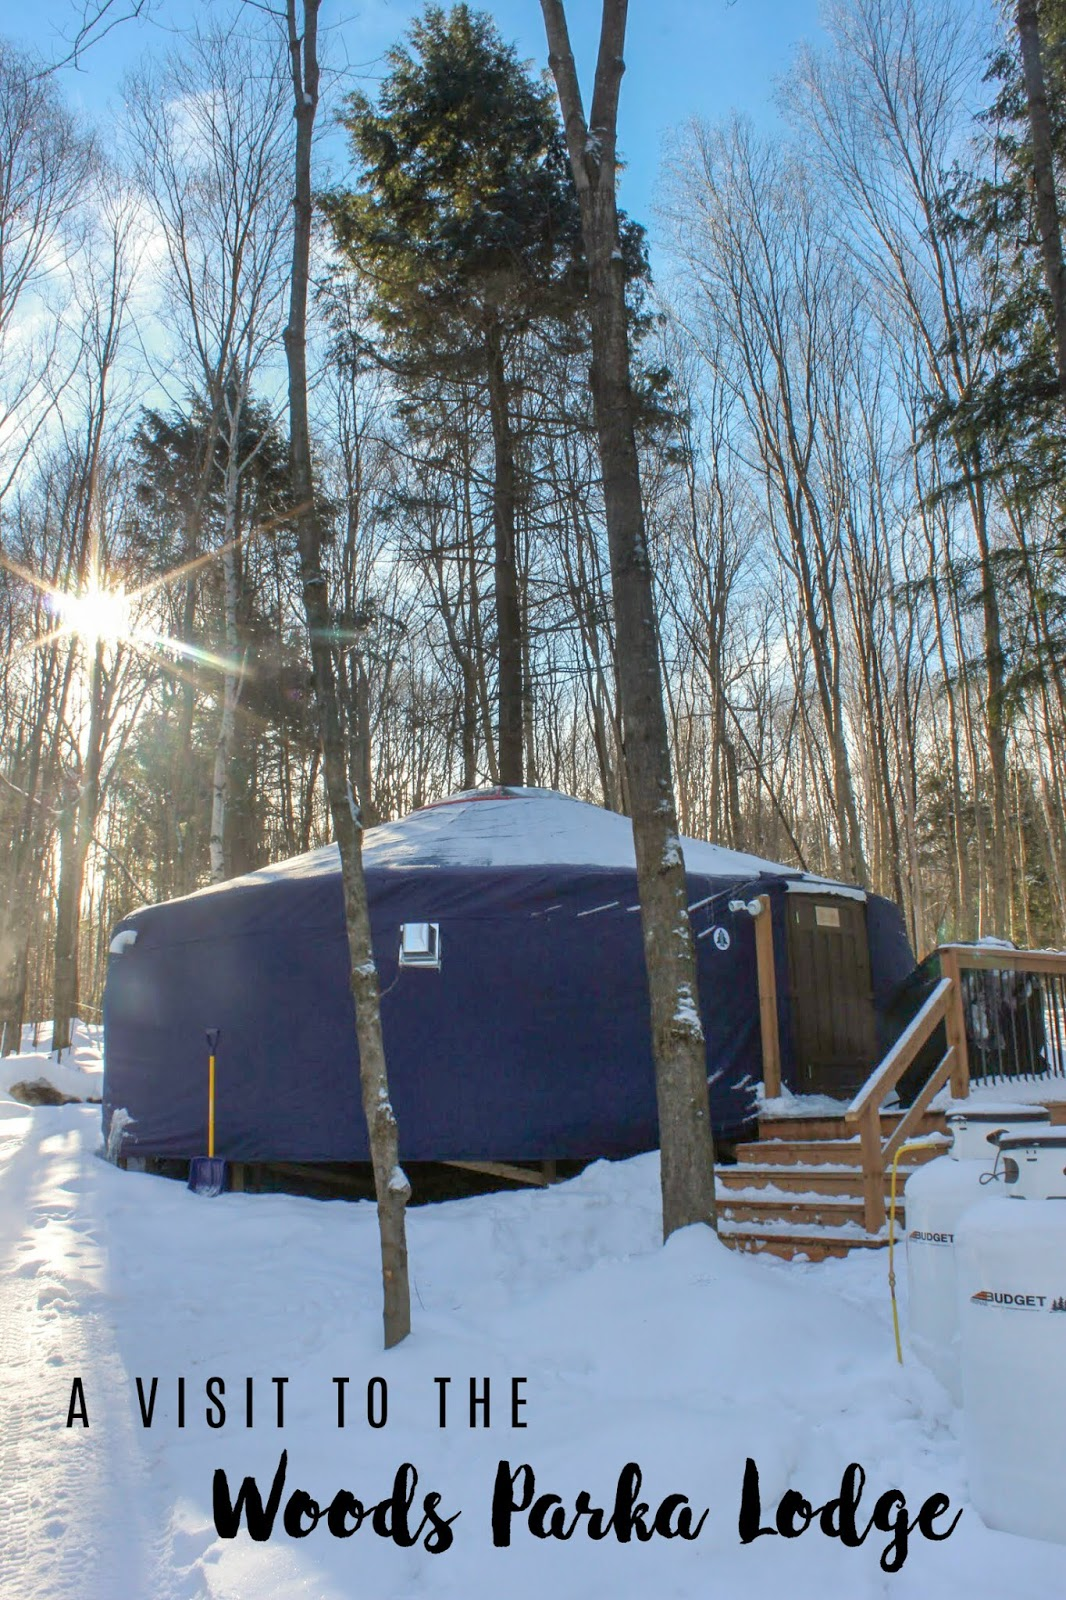 Woods Parka Lodge in Haliburton, Ontario